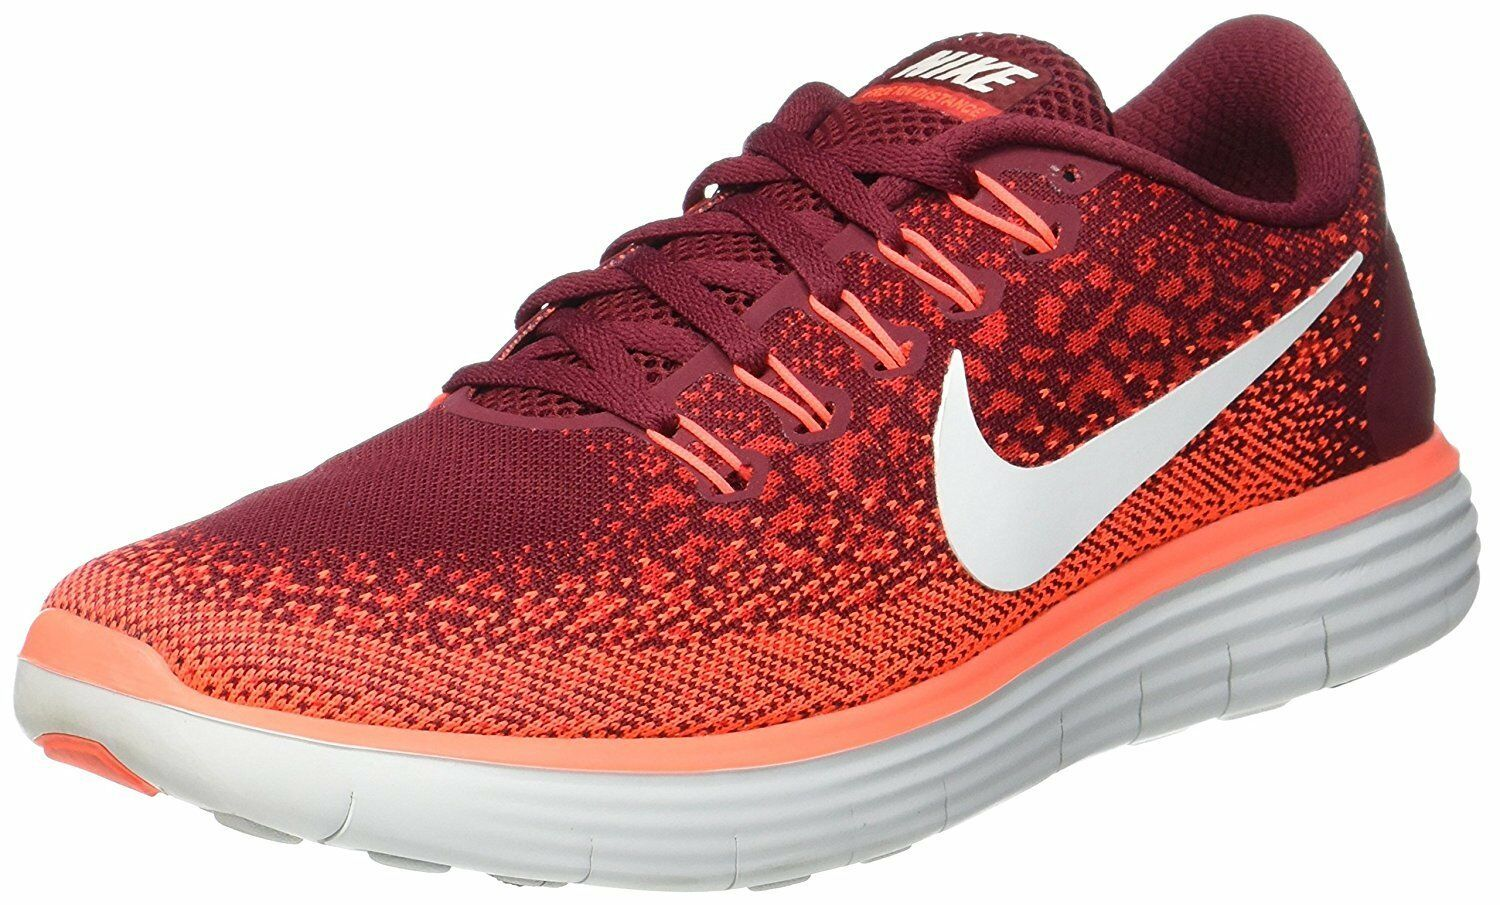 Nike Free RN Distance Men's Nylon Running shoes